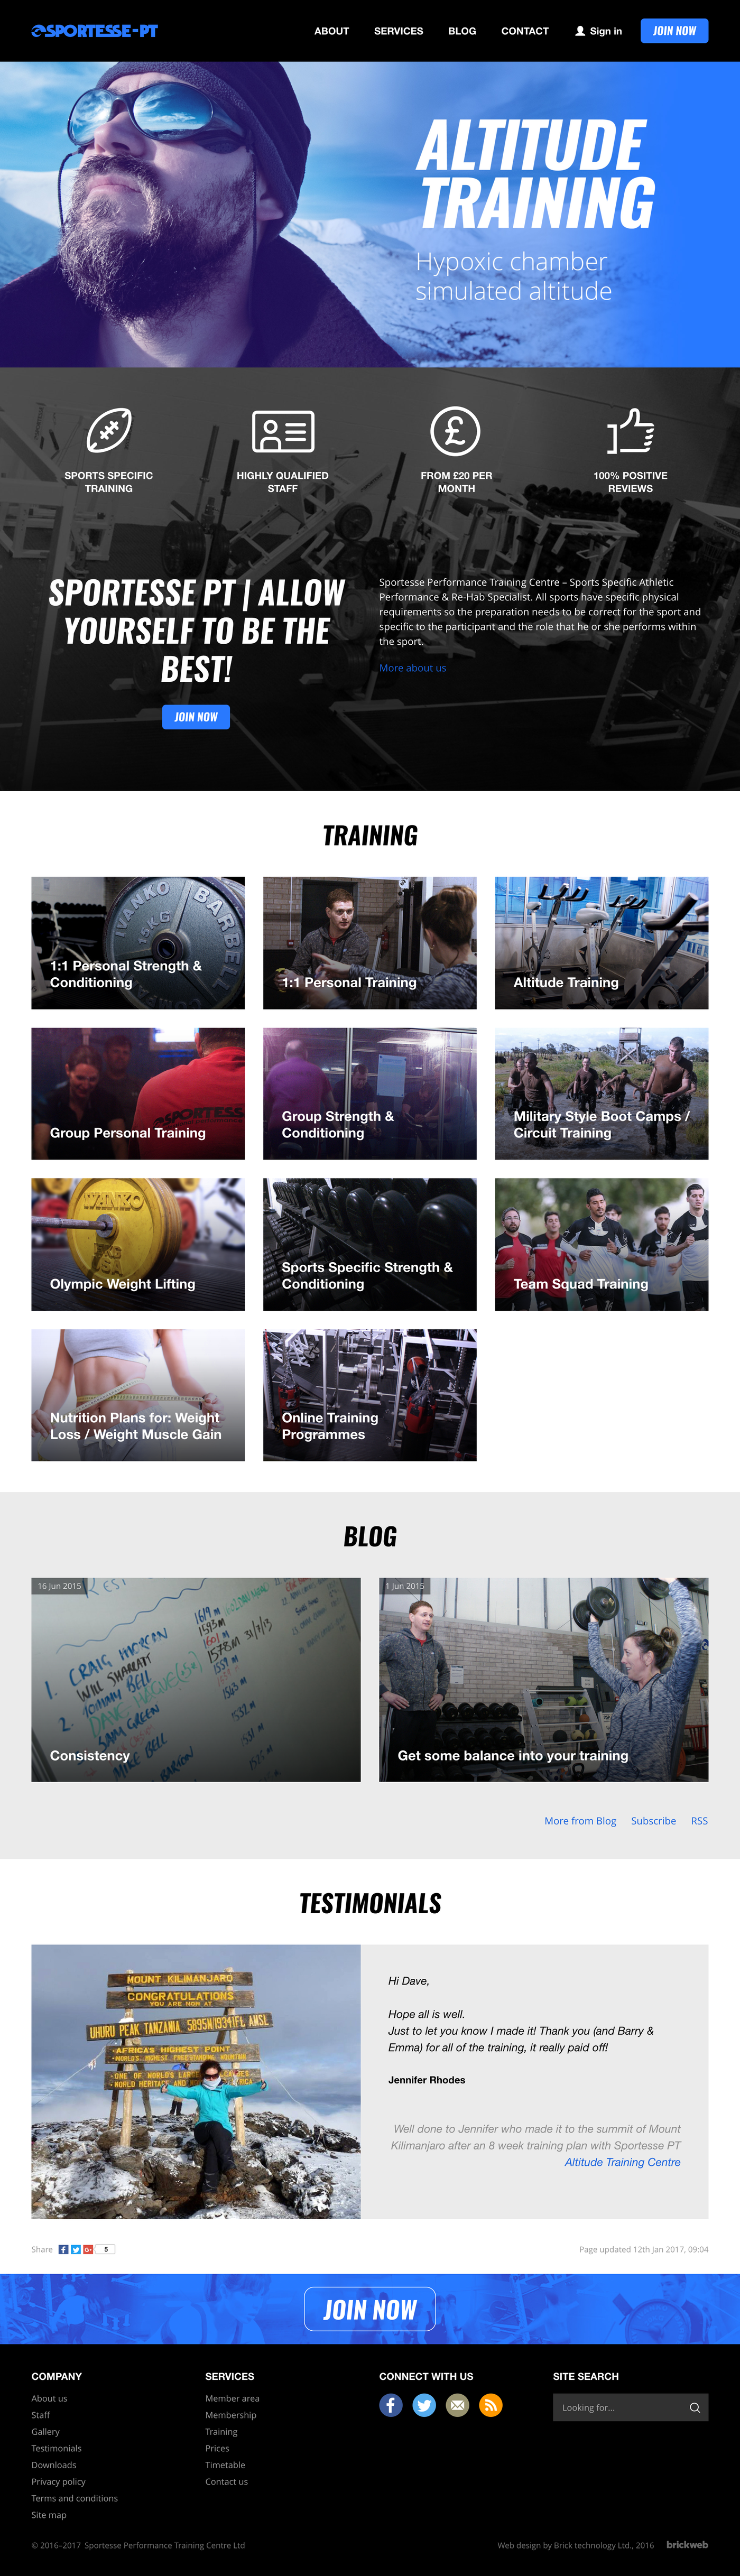 Sportesse Performance Training Center Home page